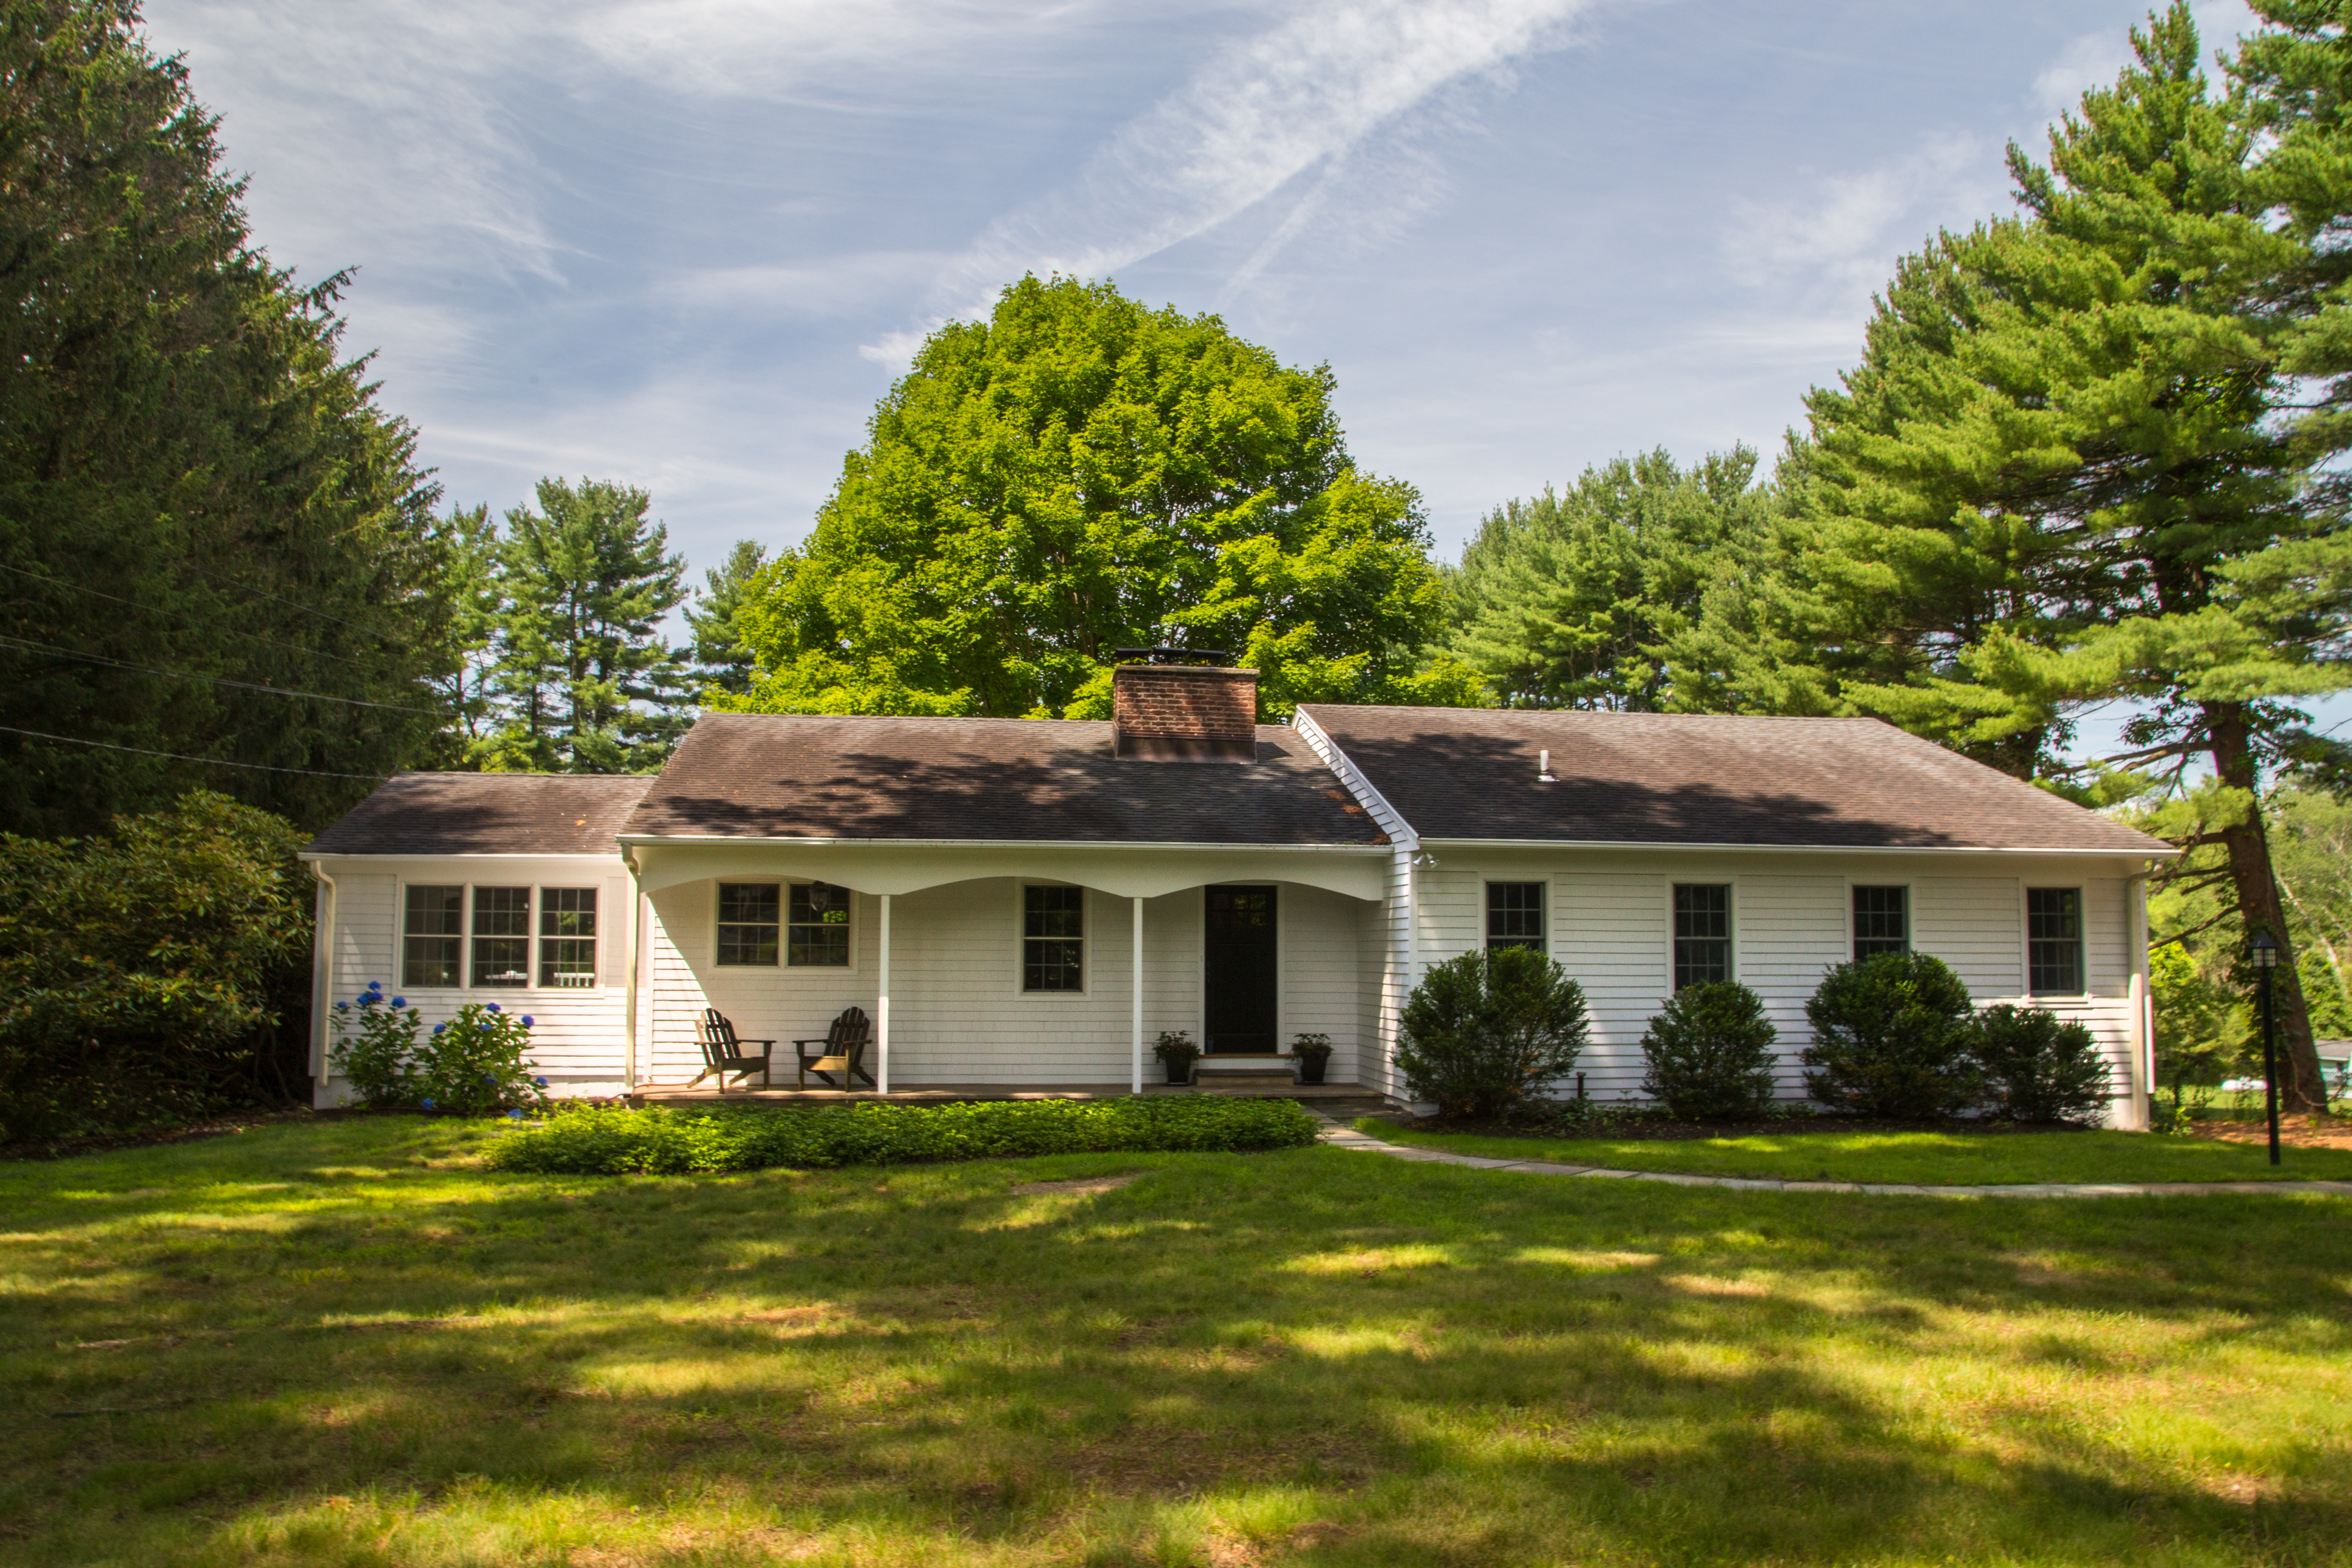 Single Family Home for Sale at Renovated Ranch 143 North Avenue Westport, Connecticut 06880 United States